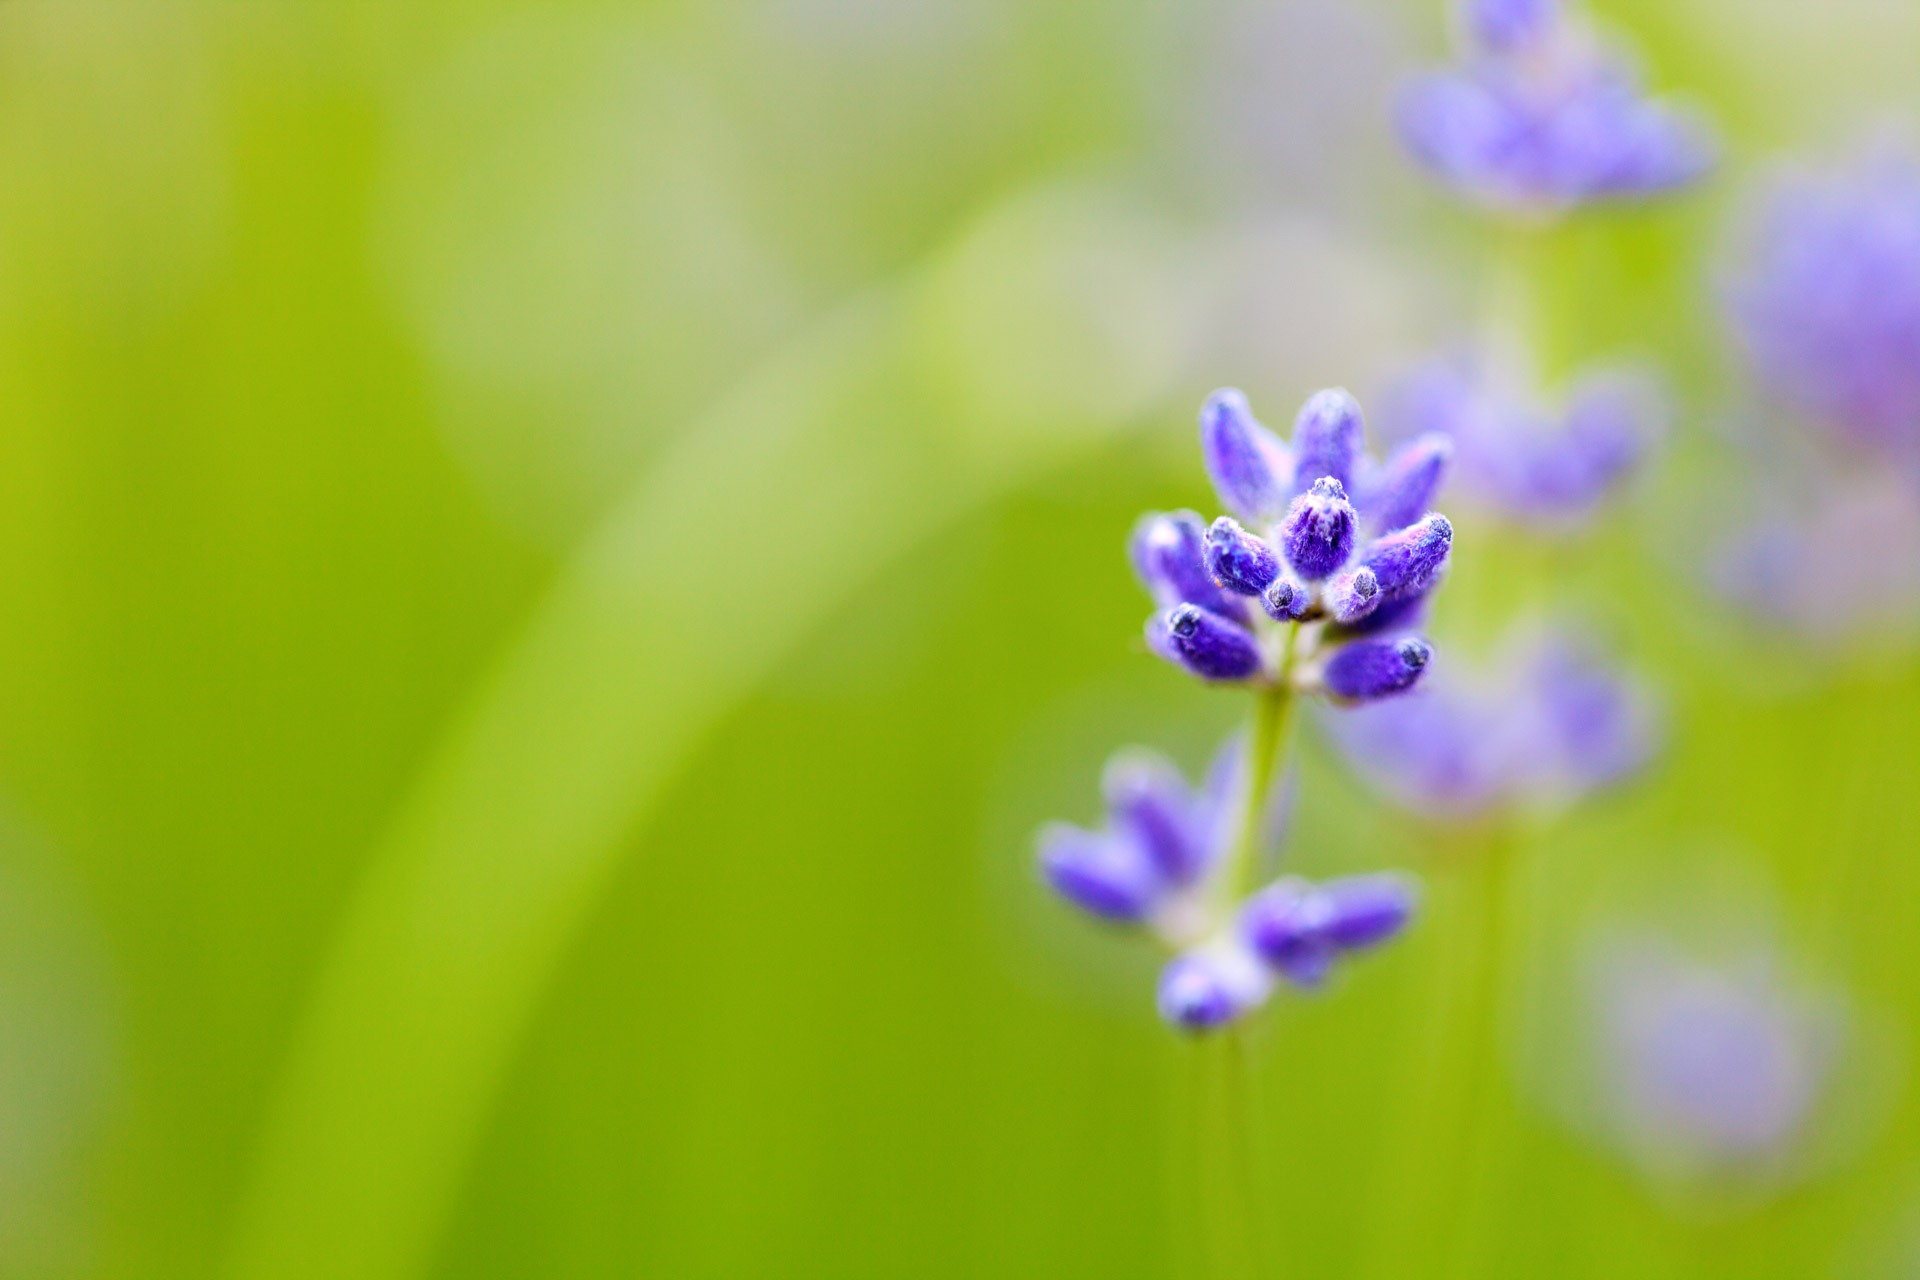 Blurred Background With Spring Purple Flowers Free Image